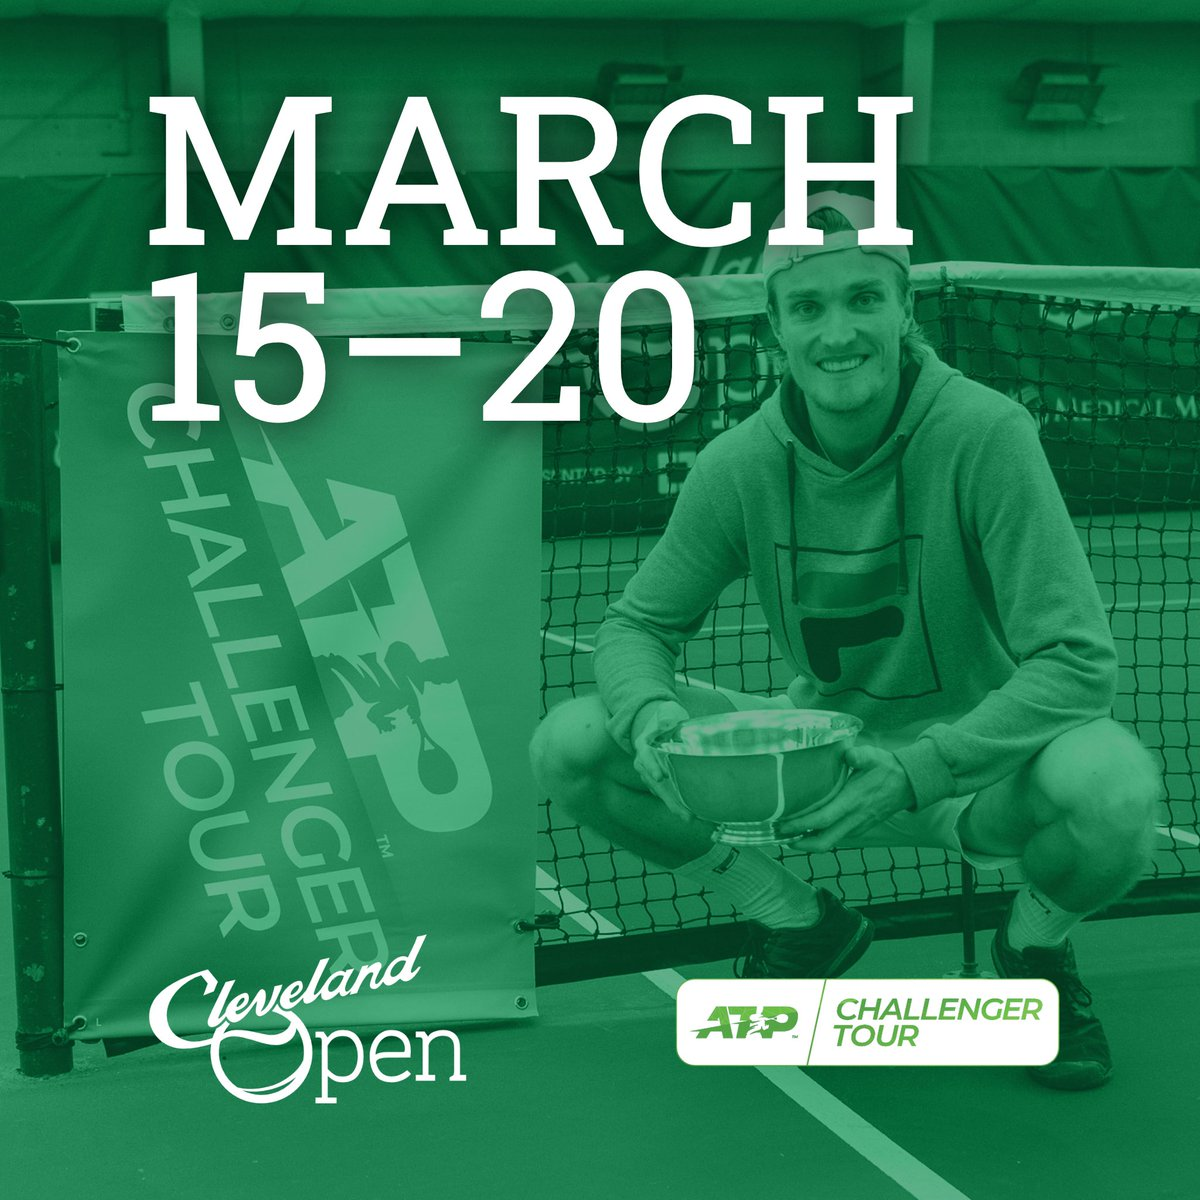 New dates, who dis? 👀  We'll be back in Cleveland March 15–20, 2021 for the third annual Cleveland Open. Get in touch at https://t.co/vZgtfOWjv7 to learn about our sponsorship opportunities!  #CLEChallenger #ATPChallenger #ATPChallengerTour #tennis @ATPChallenger https://t.co/riCEA9bc88